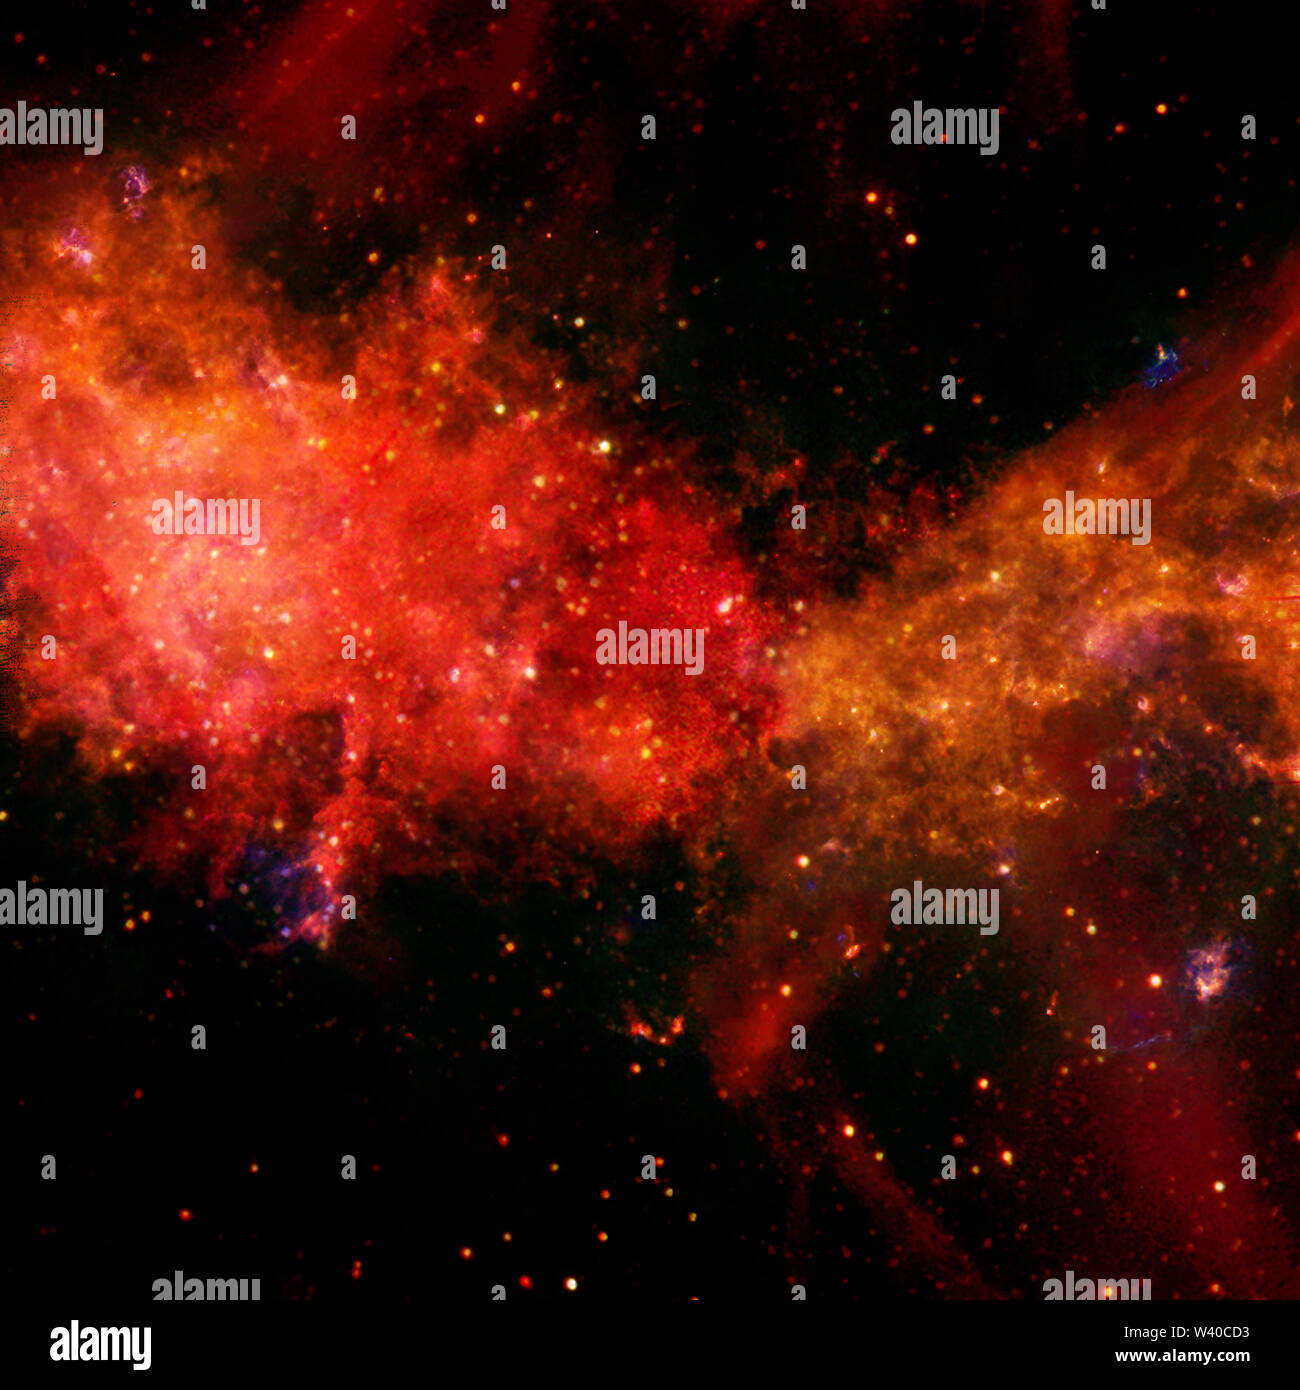 Awesome beauty of starfield somewhere in deep space. Elements of this image furnished by NASA - Stock Image